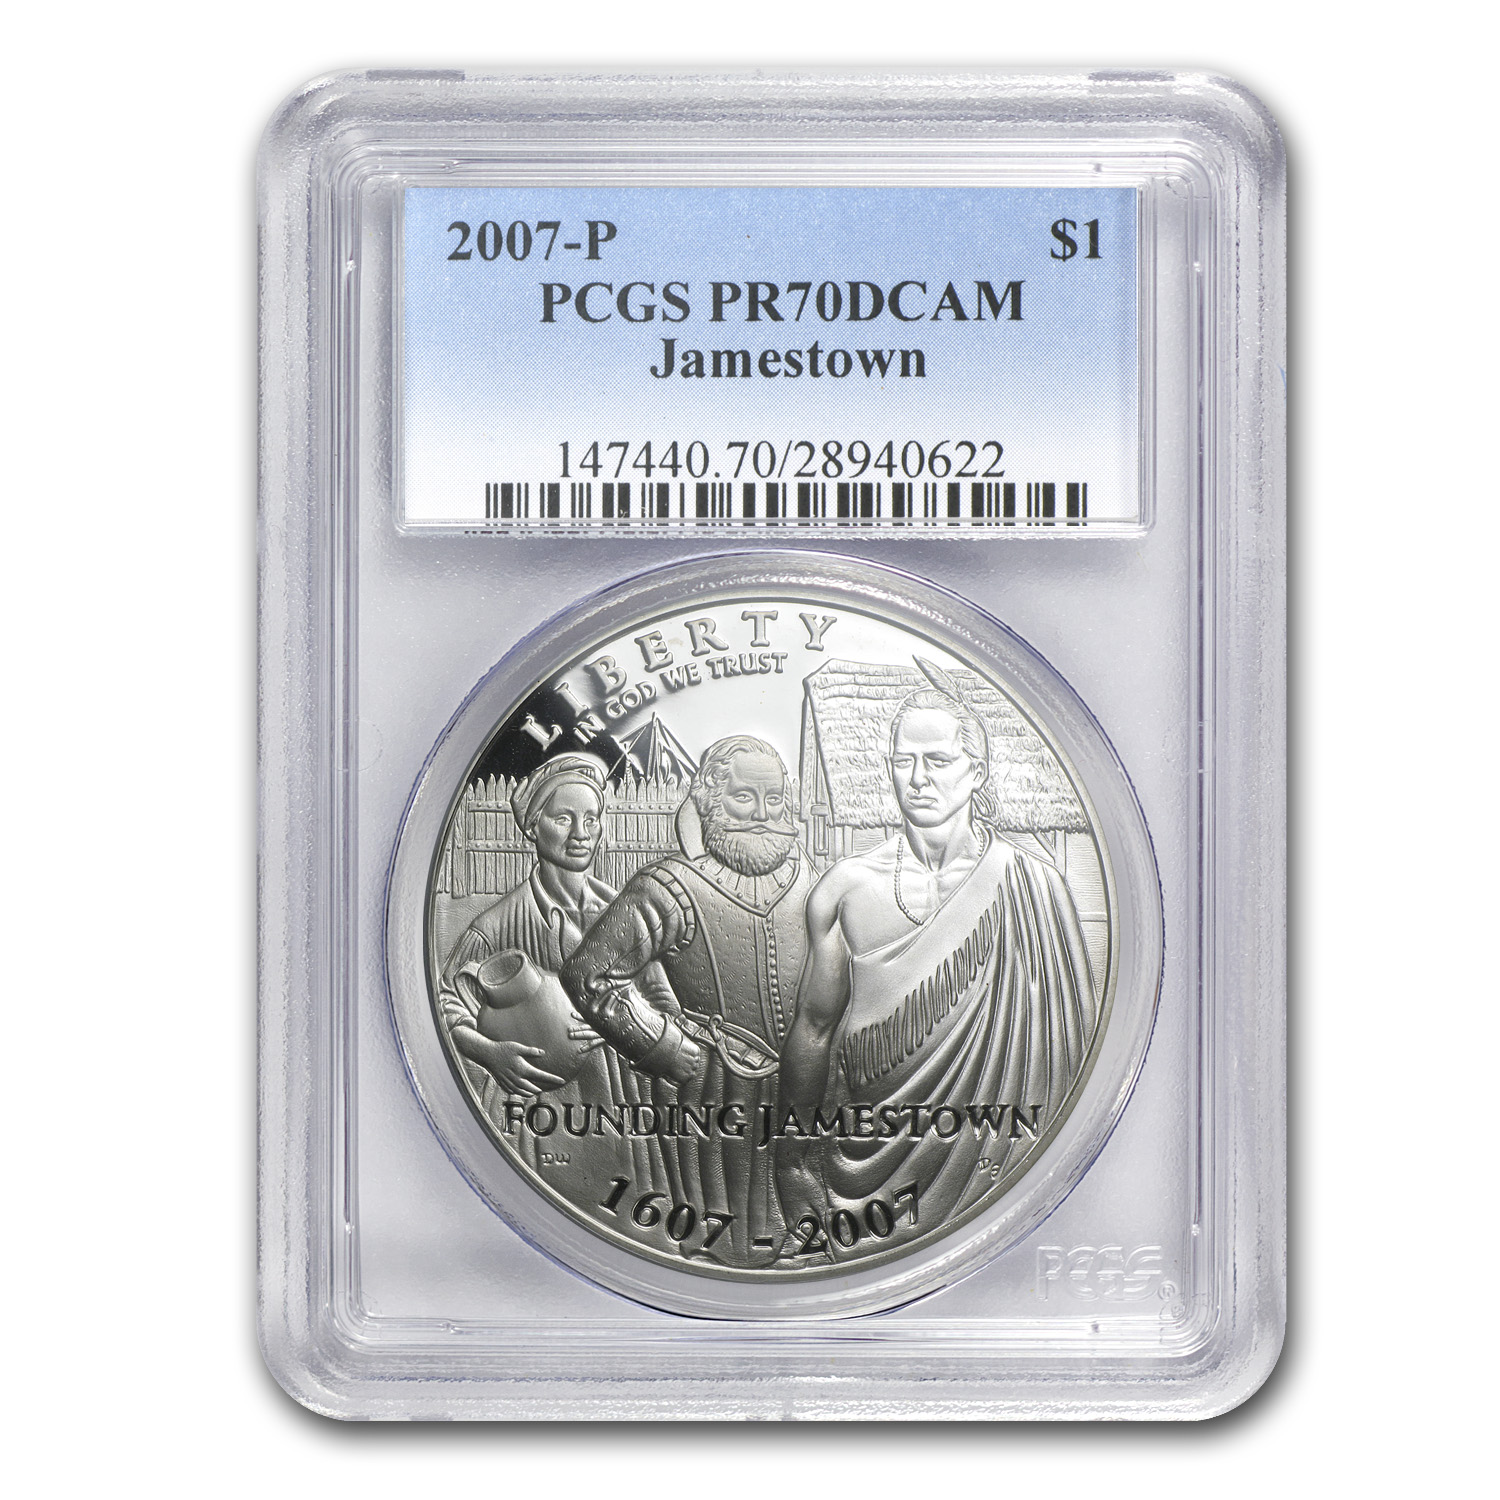 2007-P Jamestown 400th Anniv $1 Silver Commem PR-70 PCGS